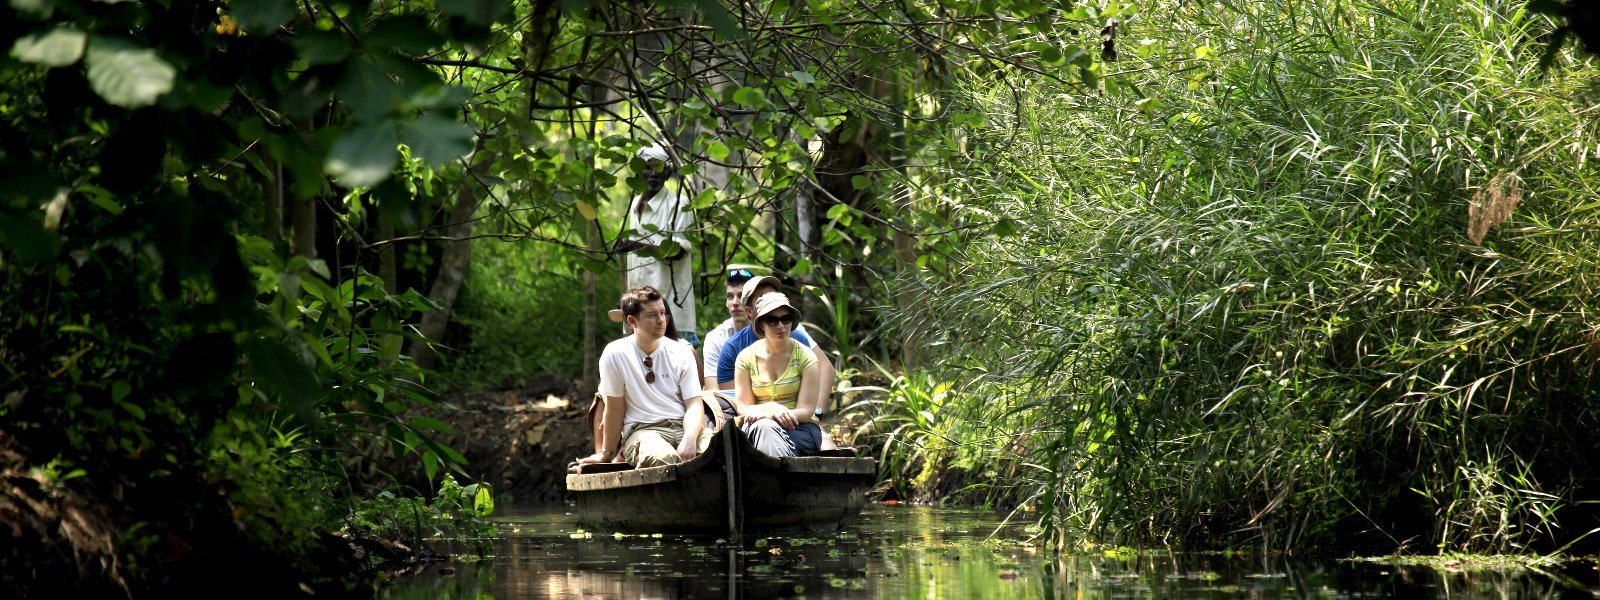 Picturesque country boat ride and village tour Kerala